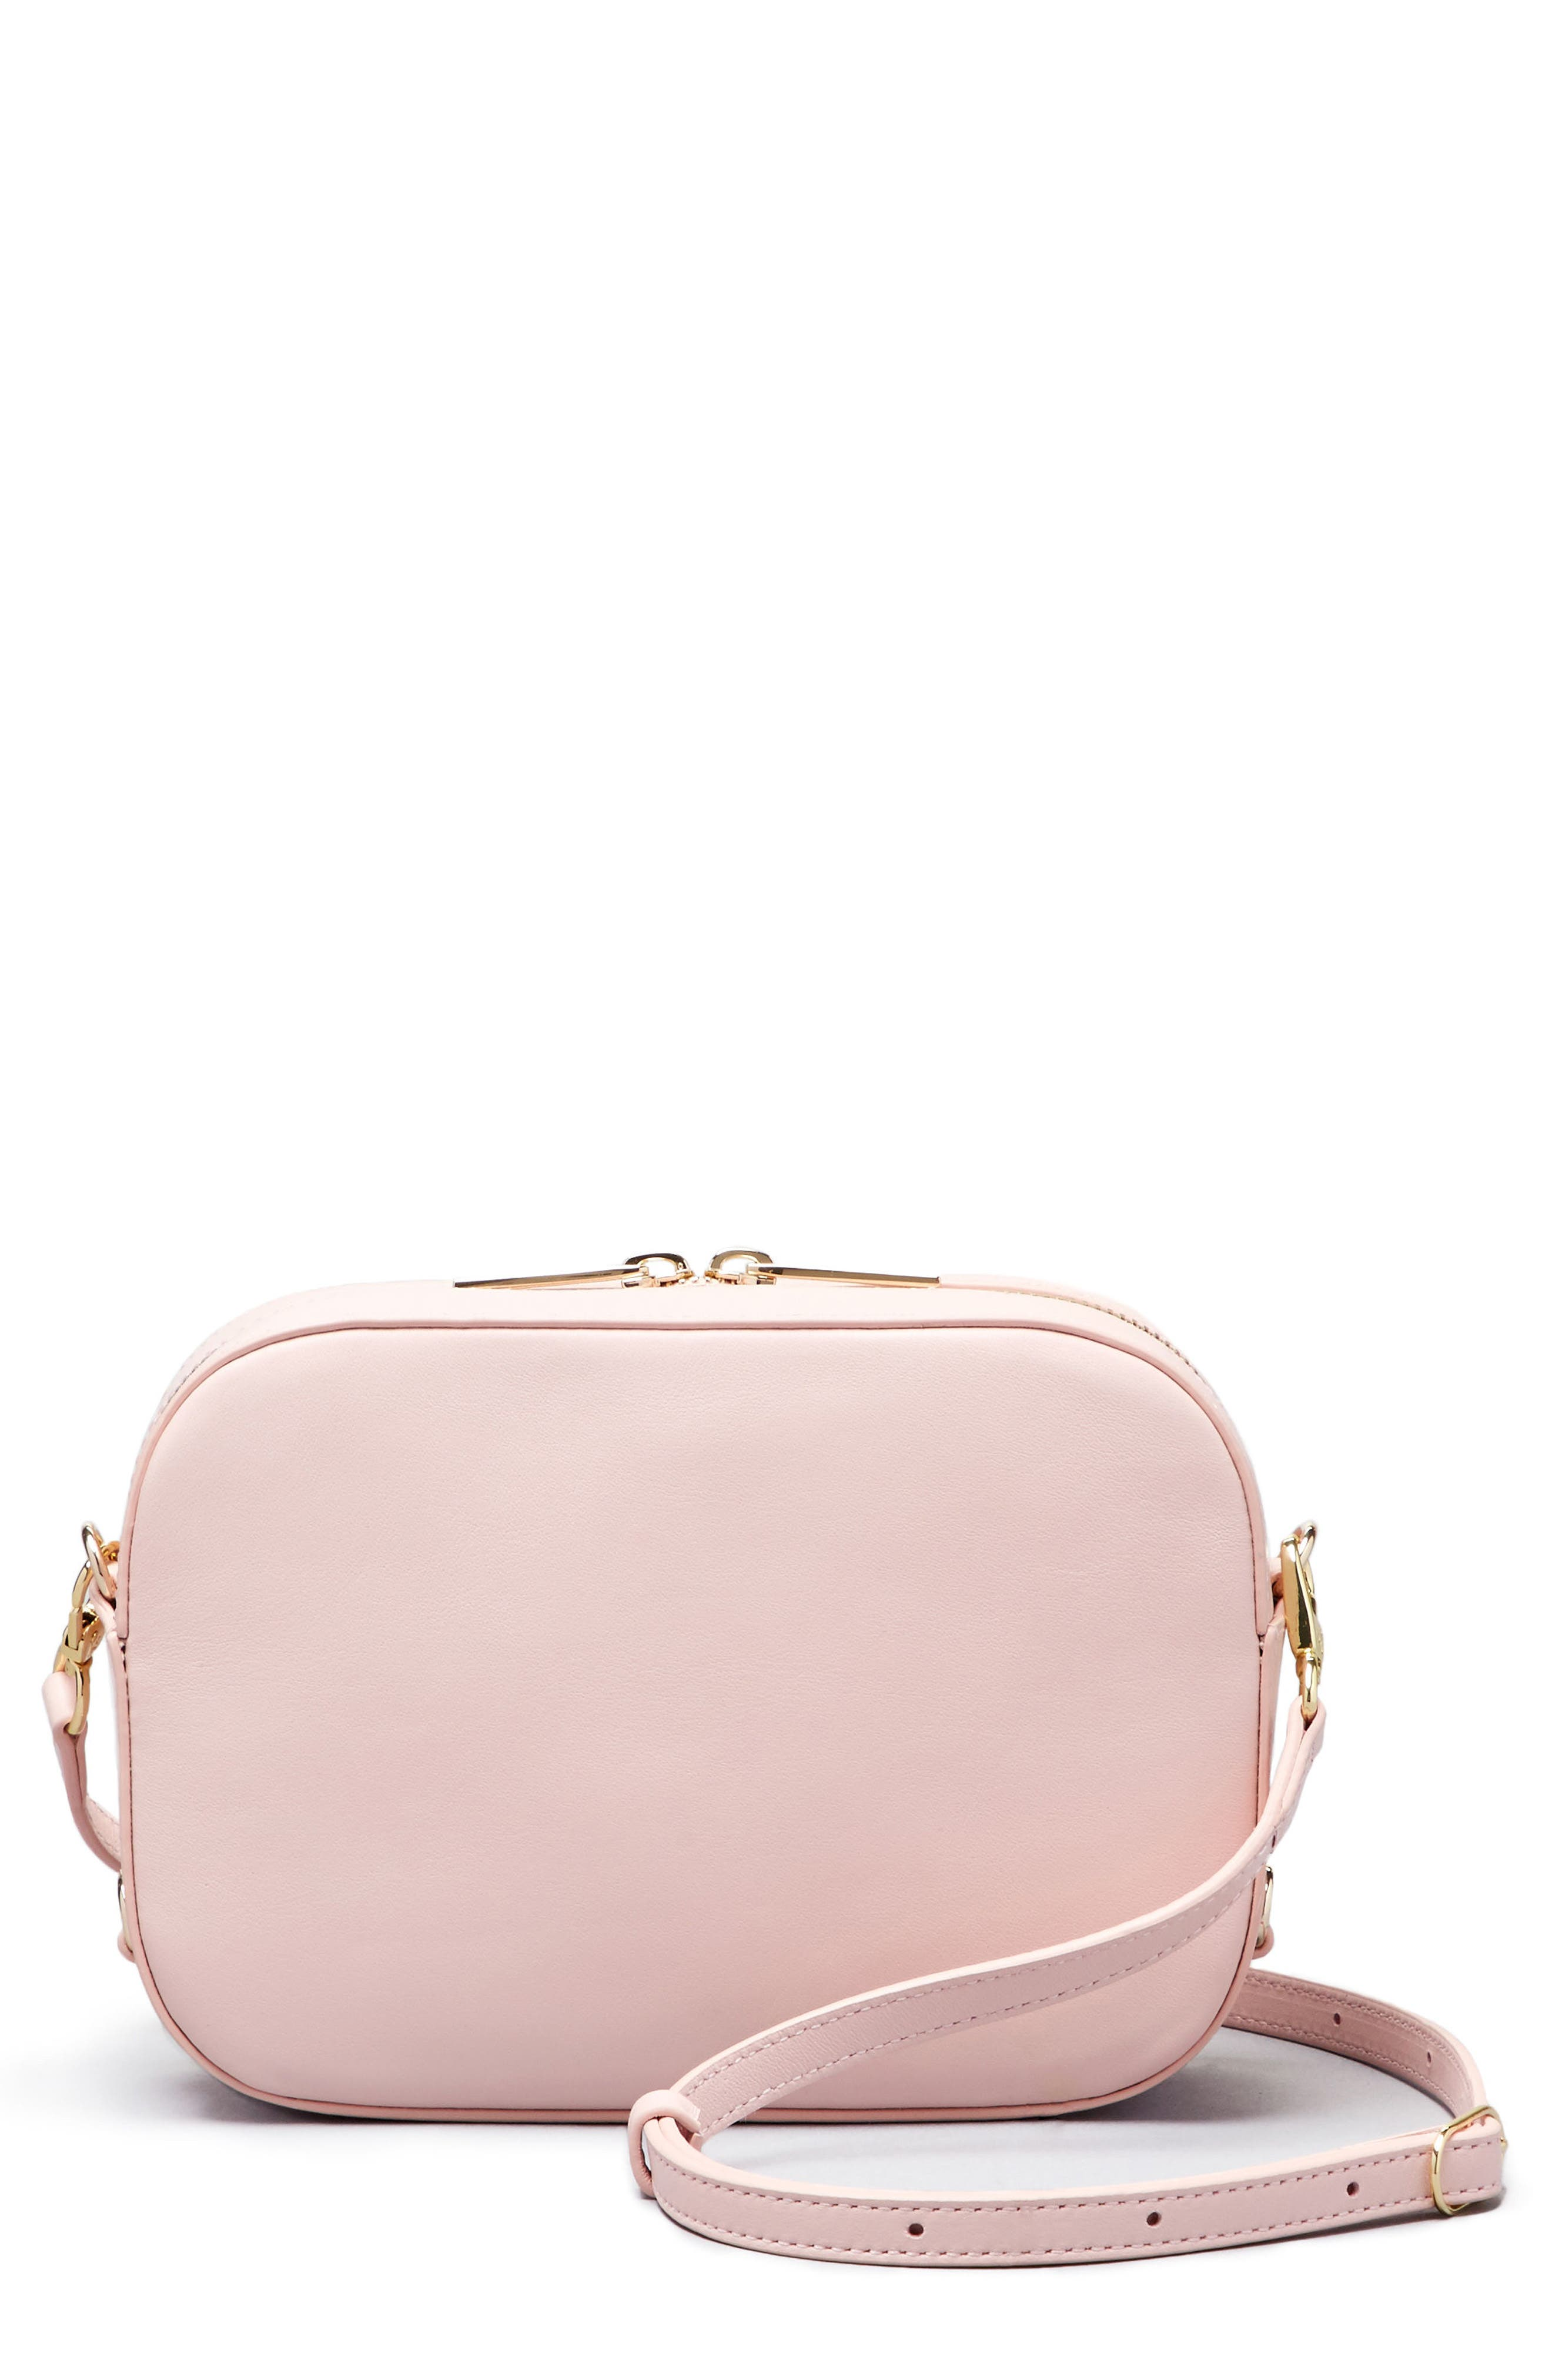 Bigger Leather Camera Bag,                         Main,                         color, Cotton Candy